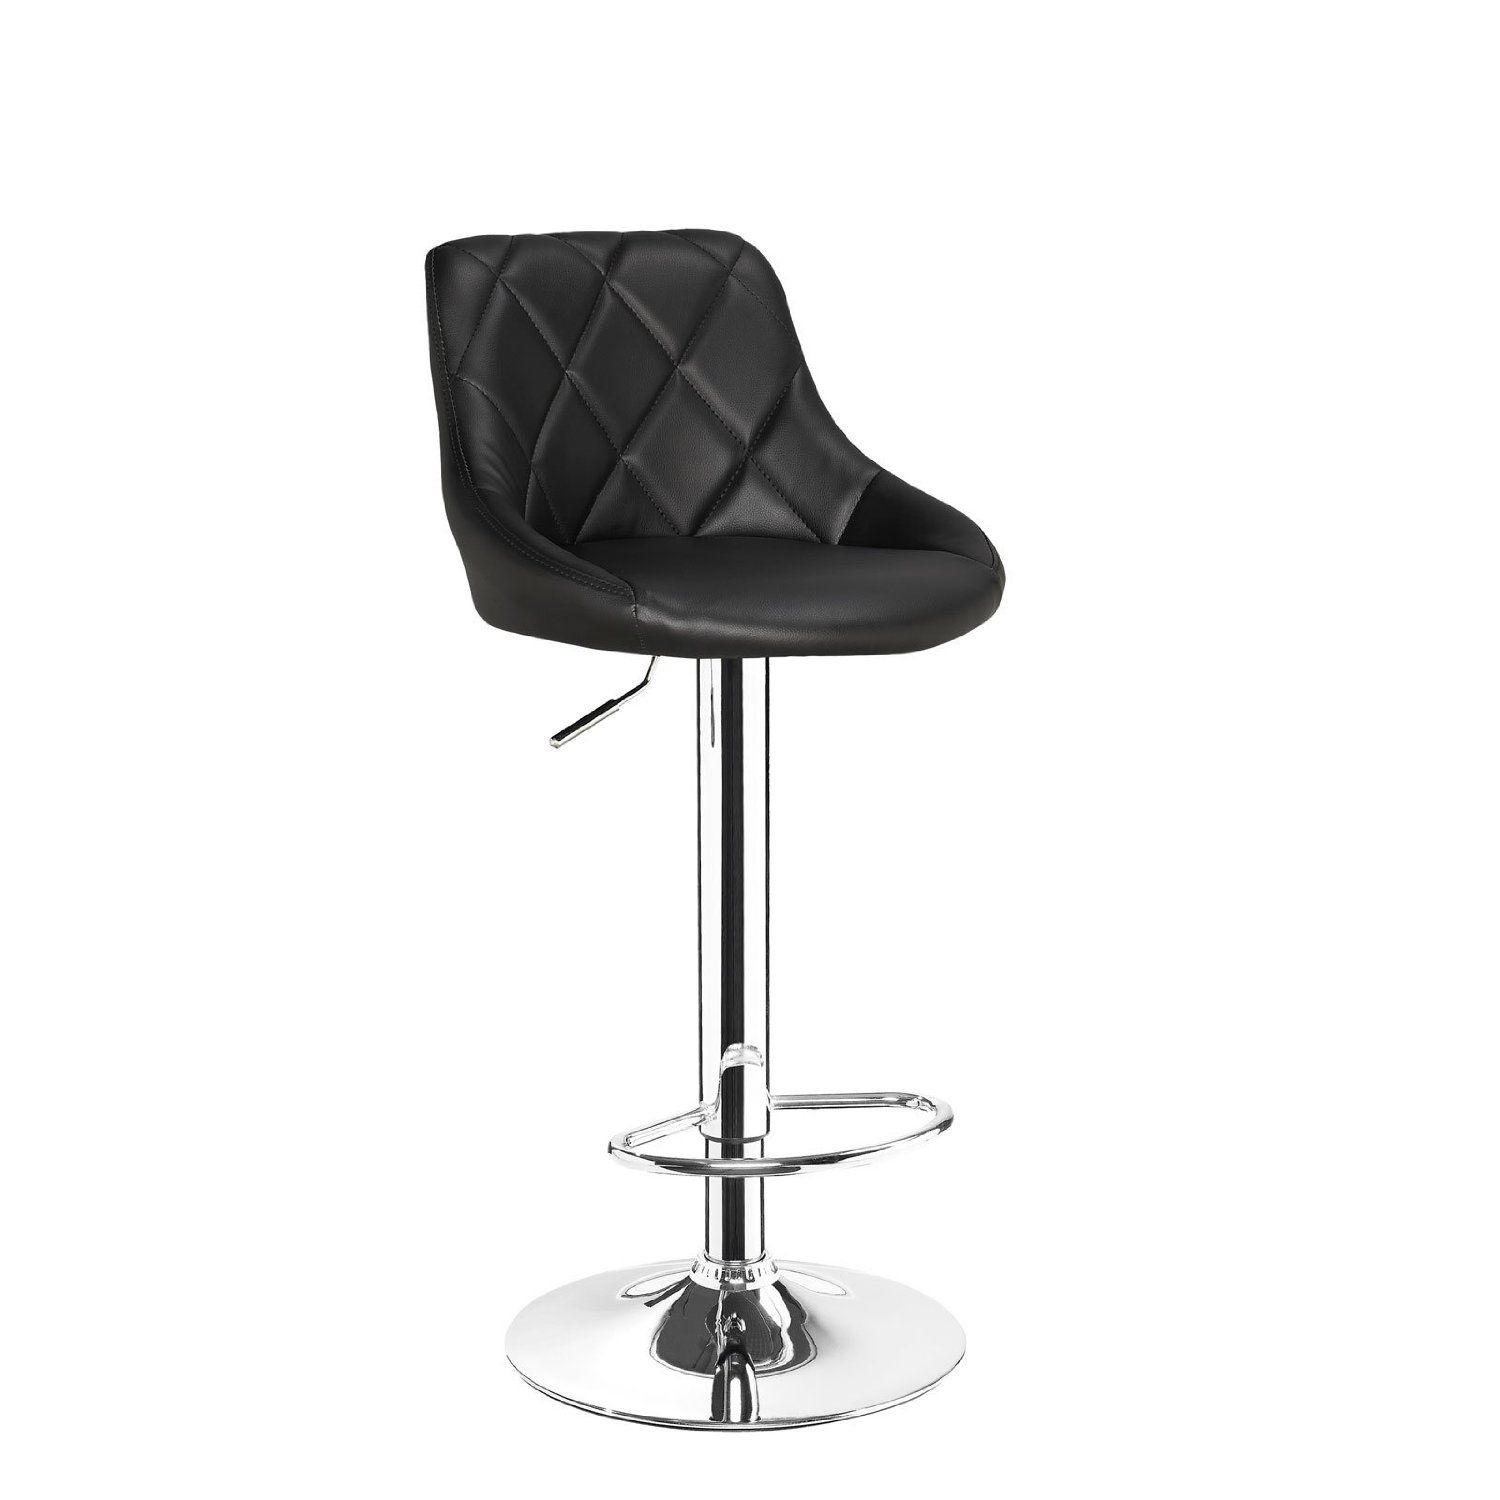 kitchen portable tags bb amaz wondrous unbeatable high grey mesmerize chairs eames stools amazon melbourne stunning bar pictures modern counter intrigue stool most exotic fascinating